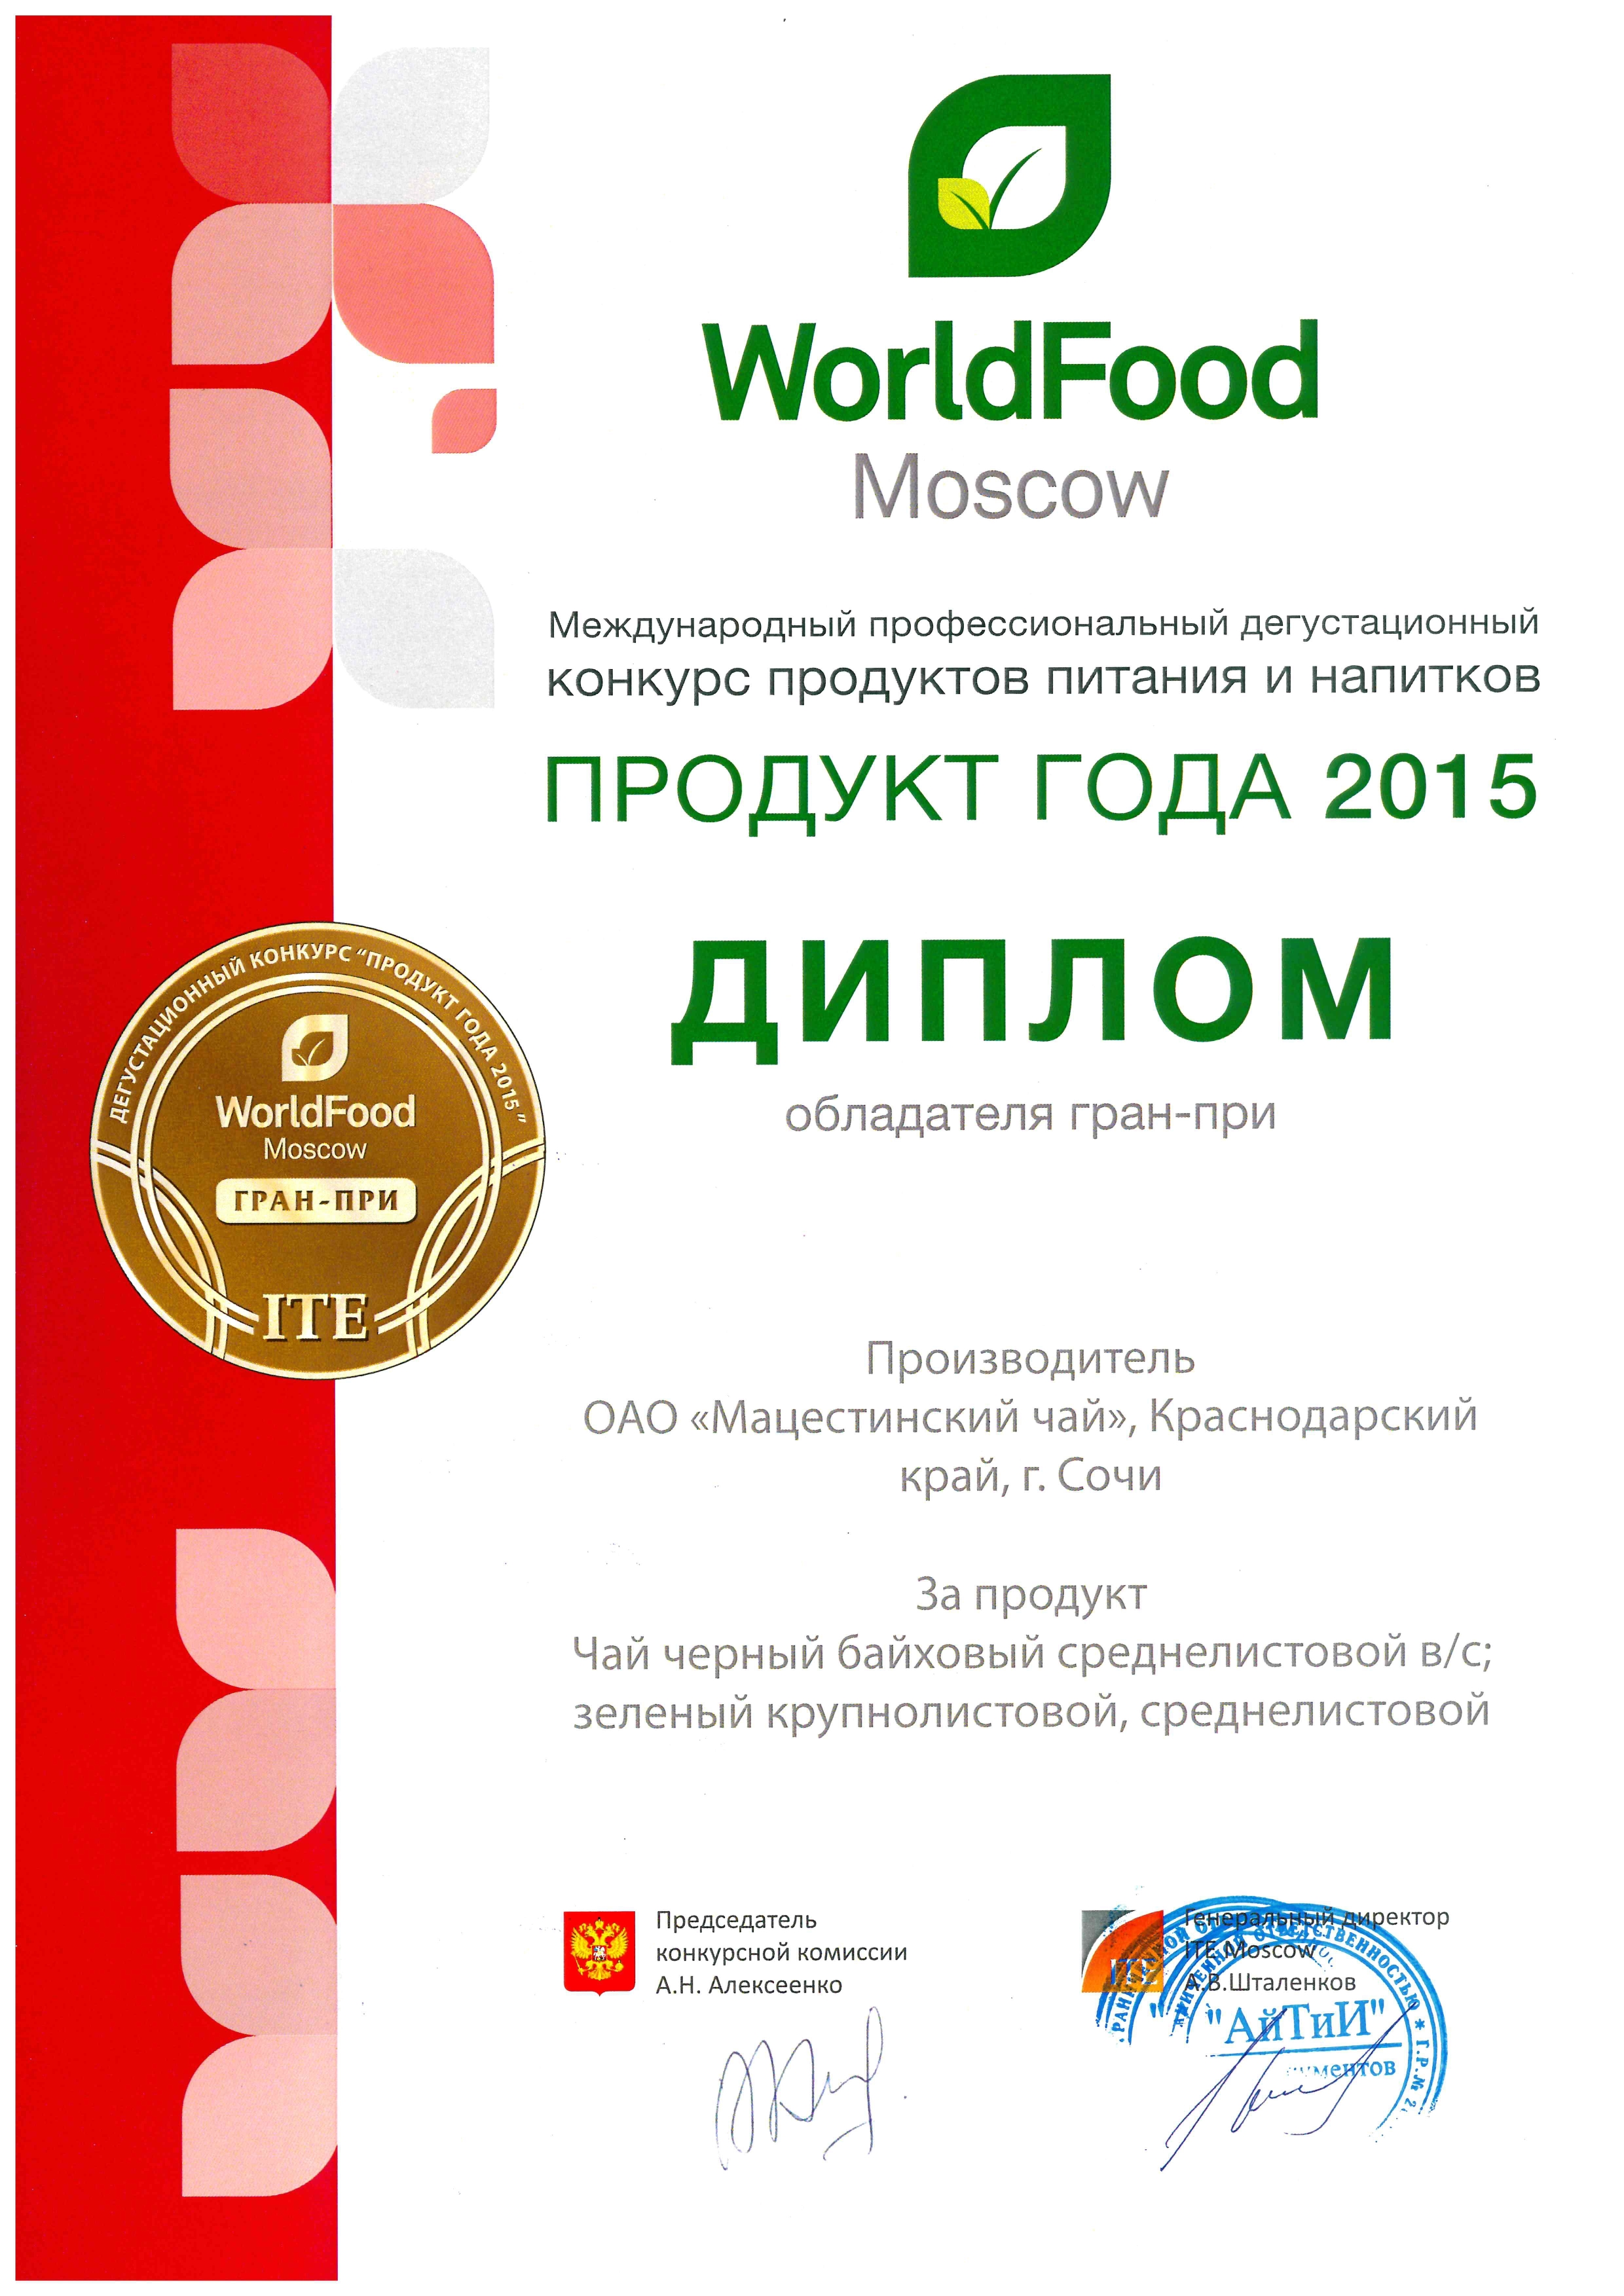 WorldFoodMoscow2015ГранПриПродуктГода.jpg